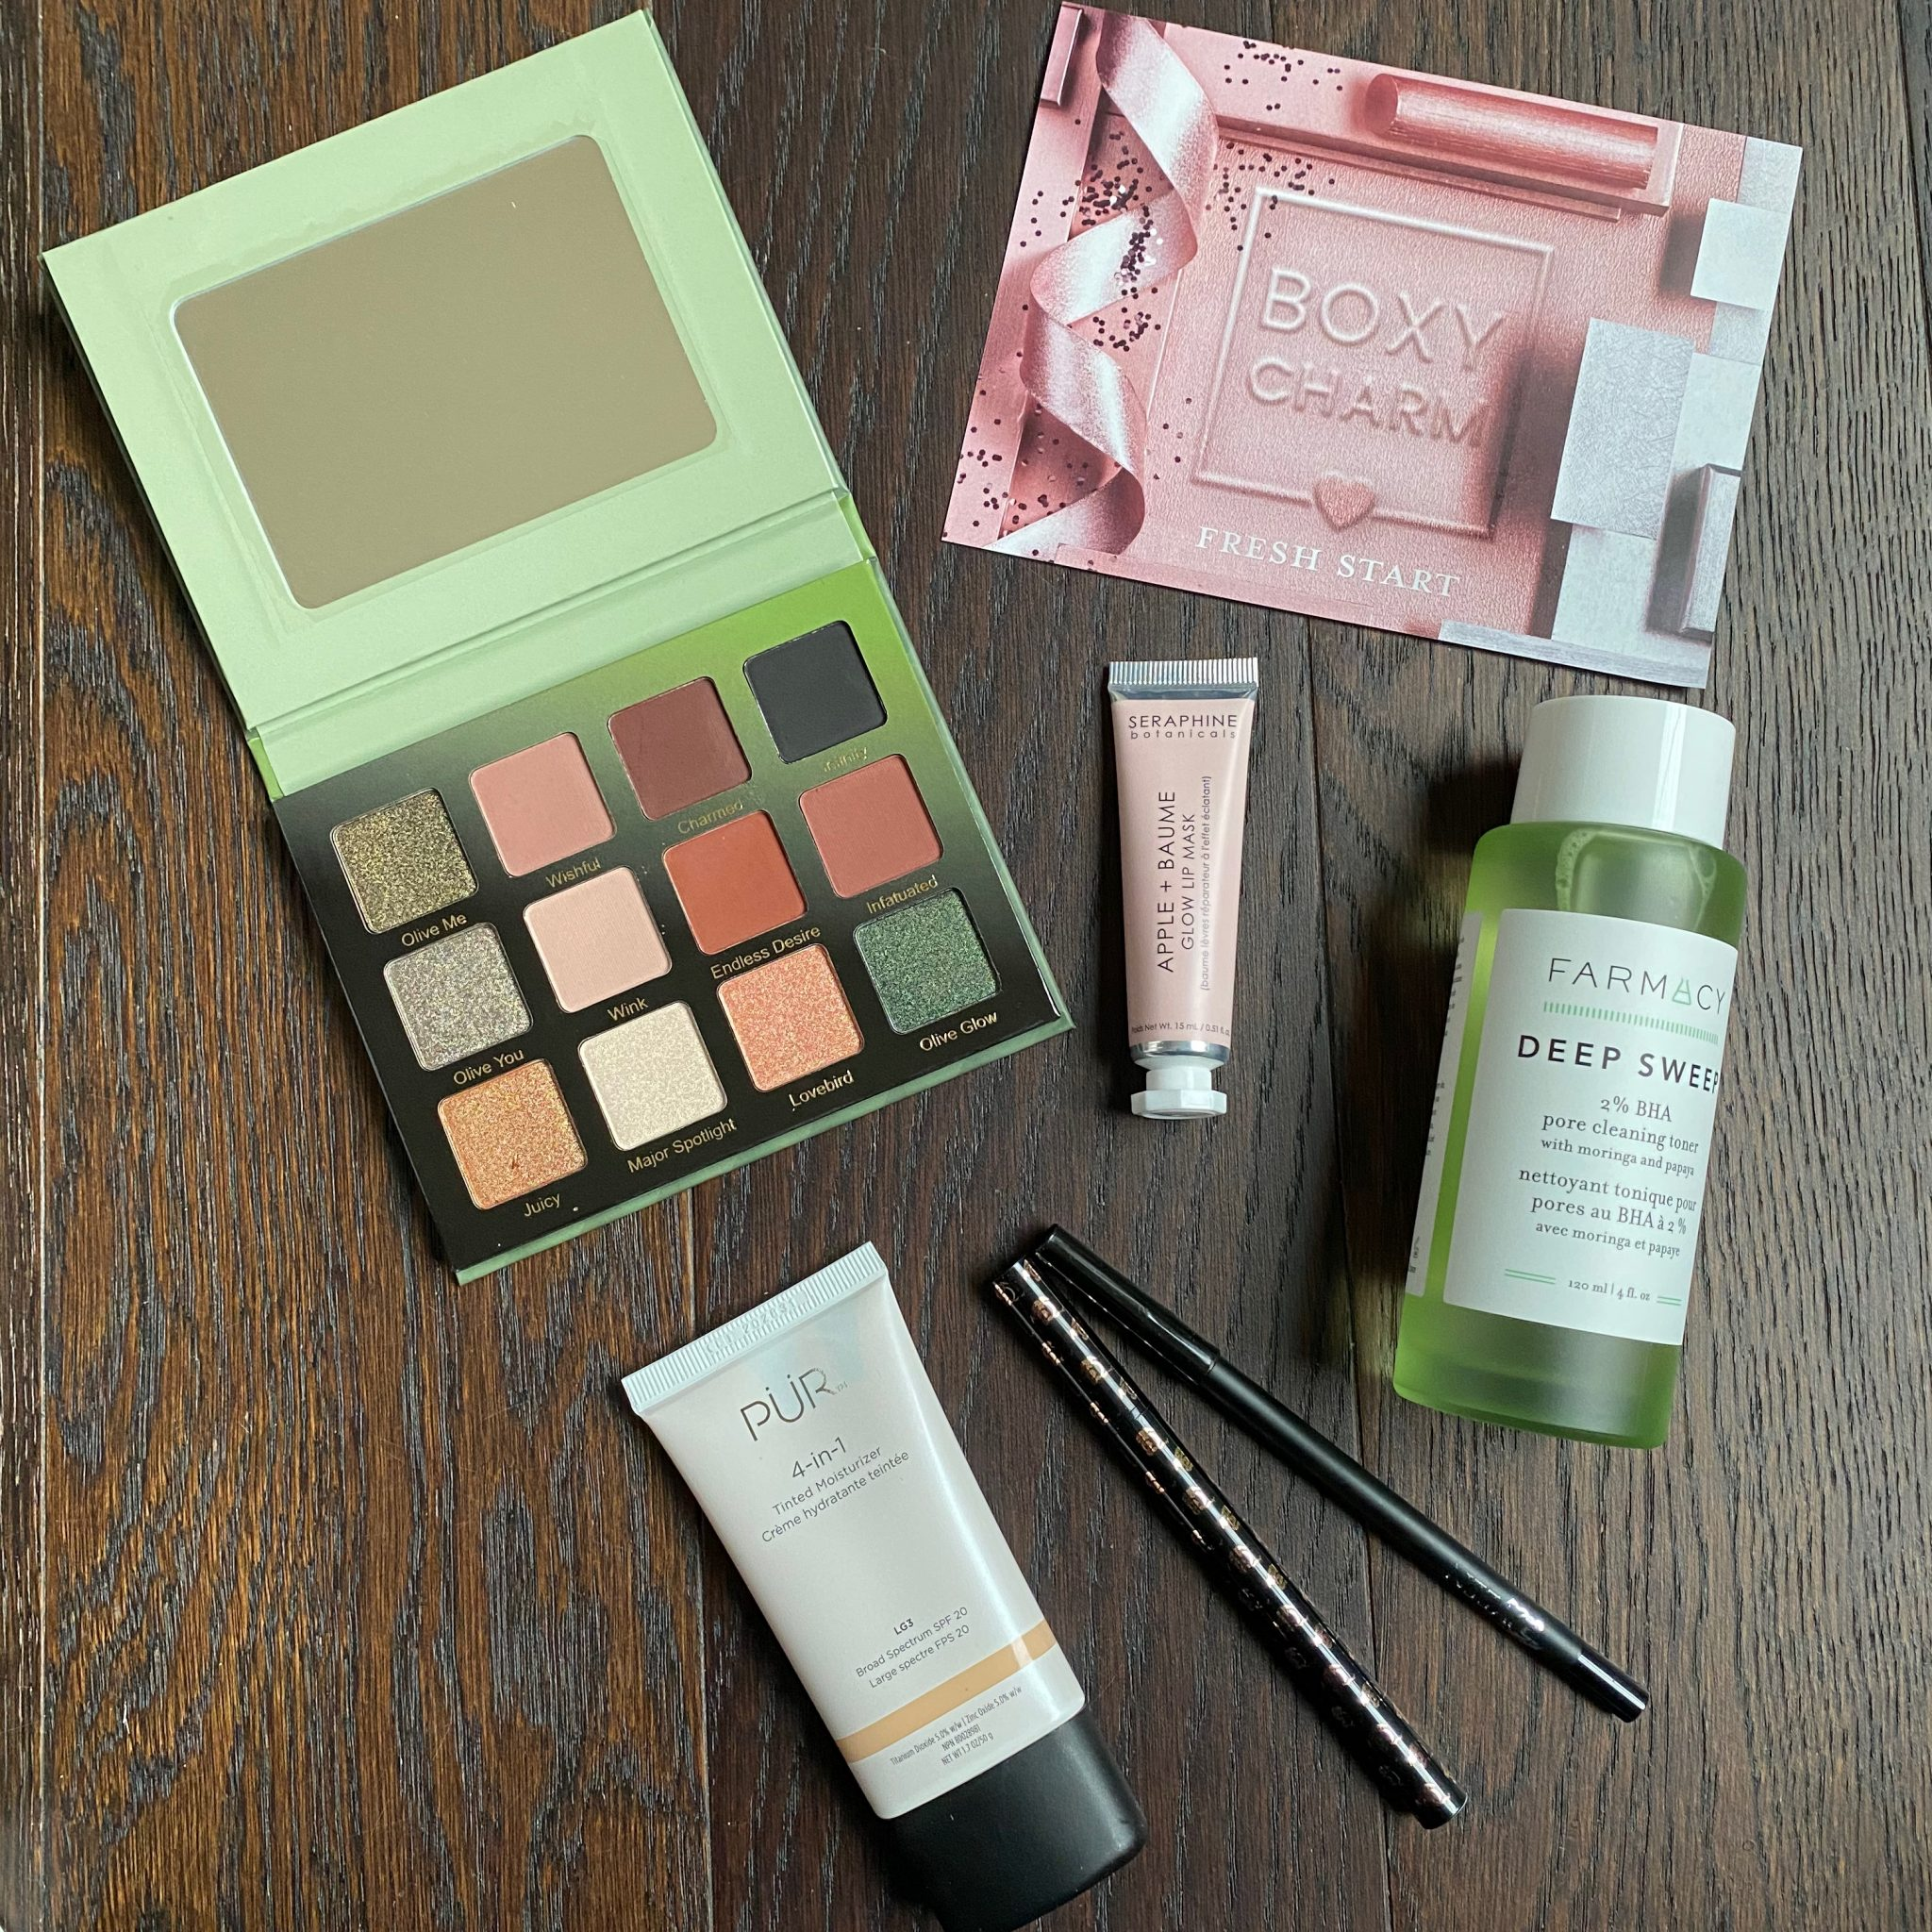 BOXYCHARM Subscription Review – January 2021 + Free Gift Coupon Code